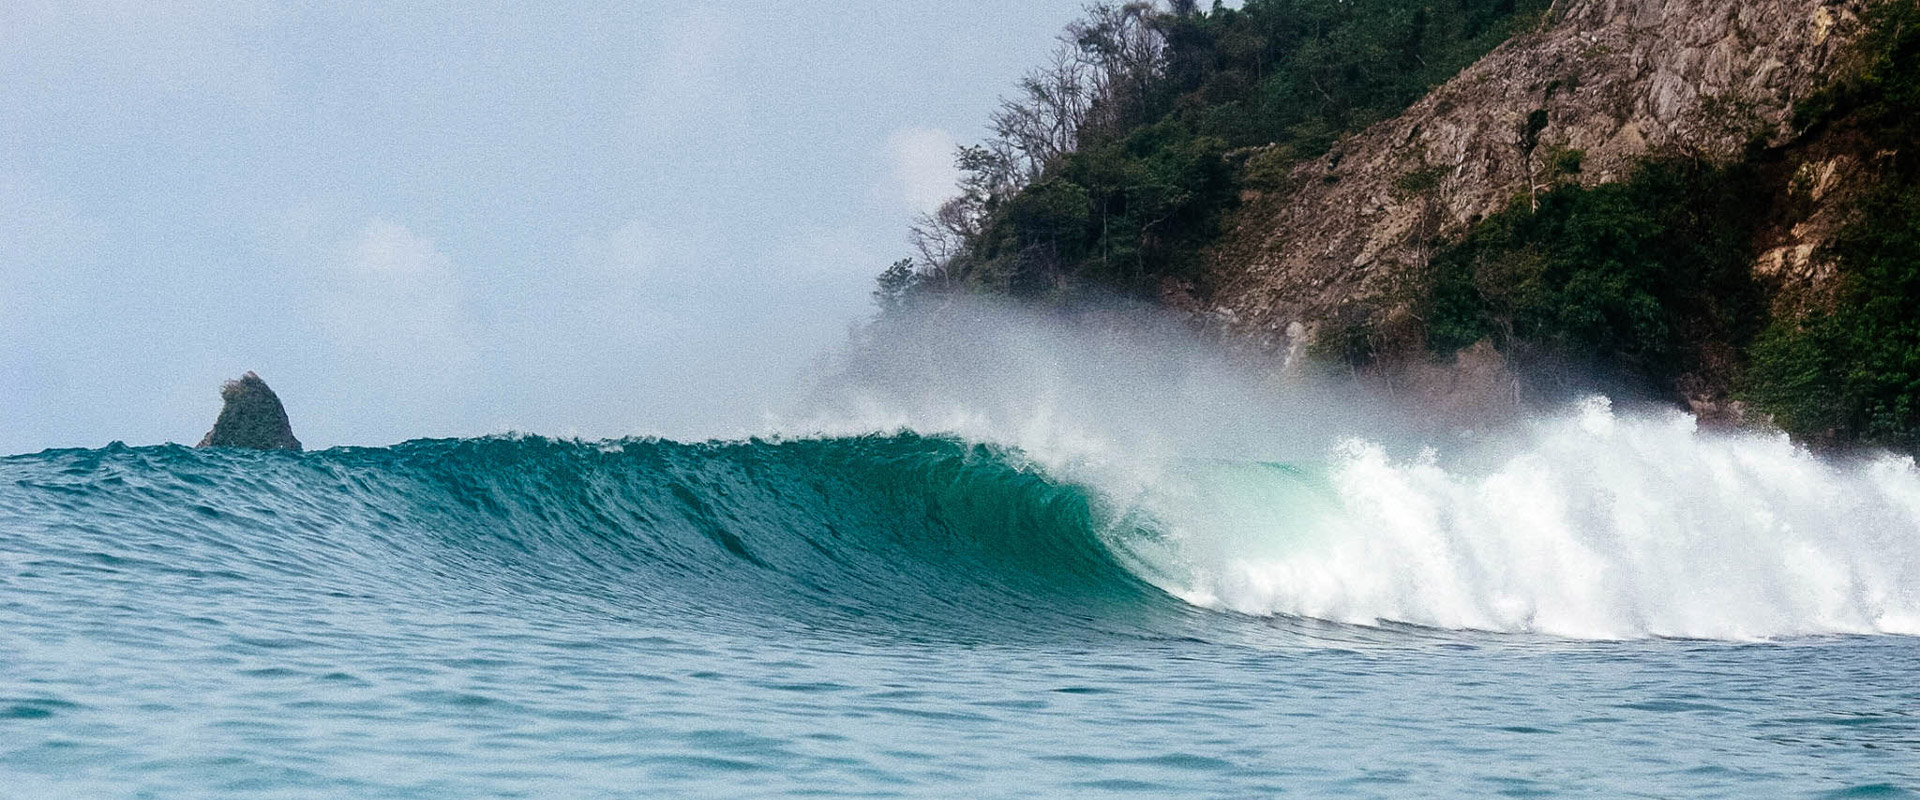 surf-expedition-costa-rica-wave-right